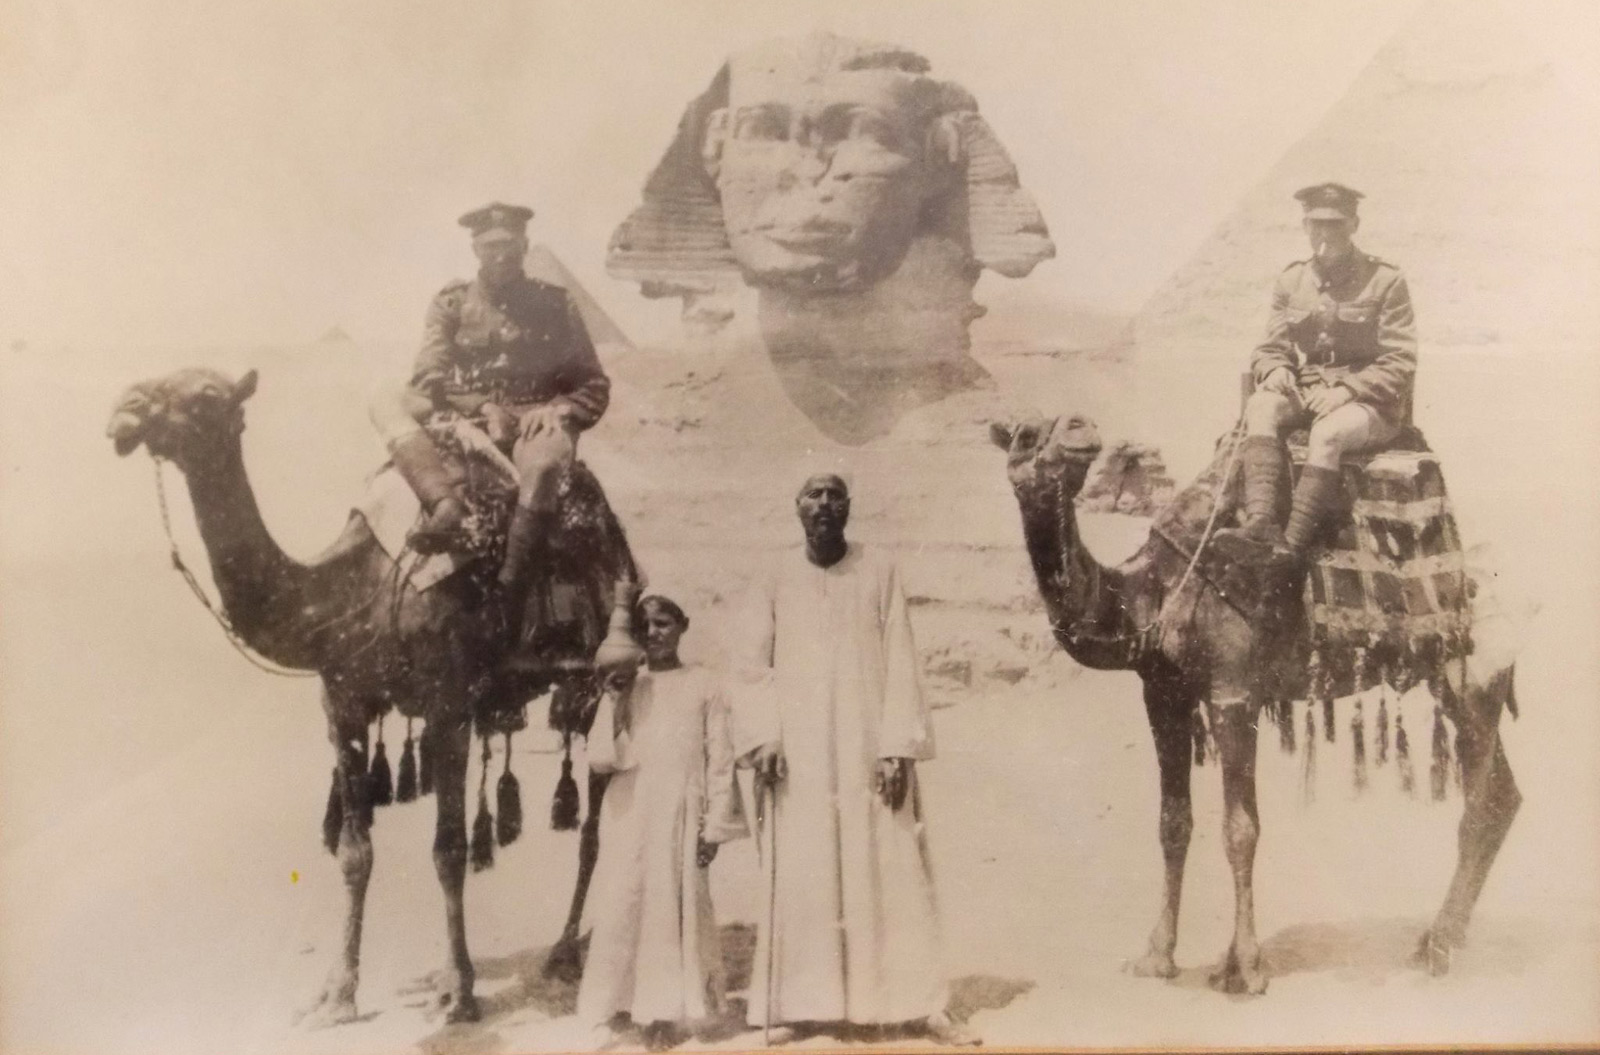 soldiers on camels